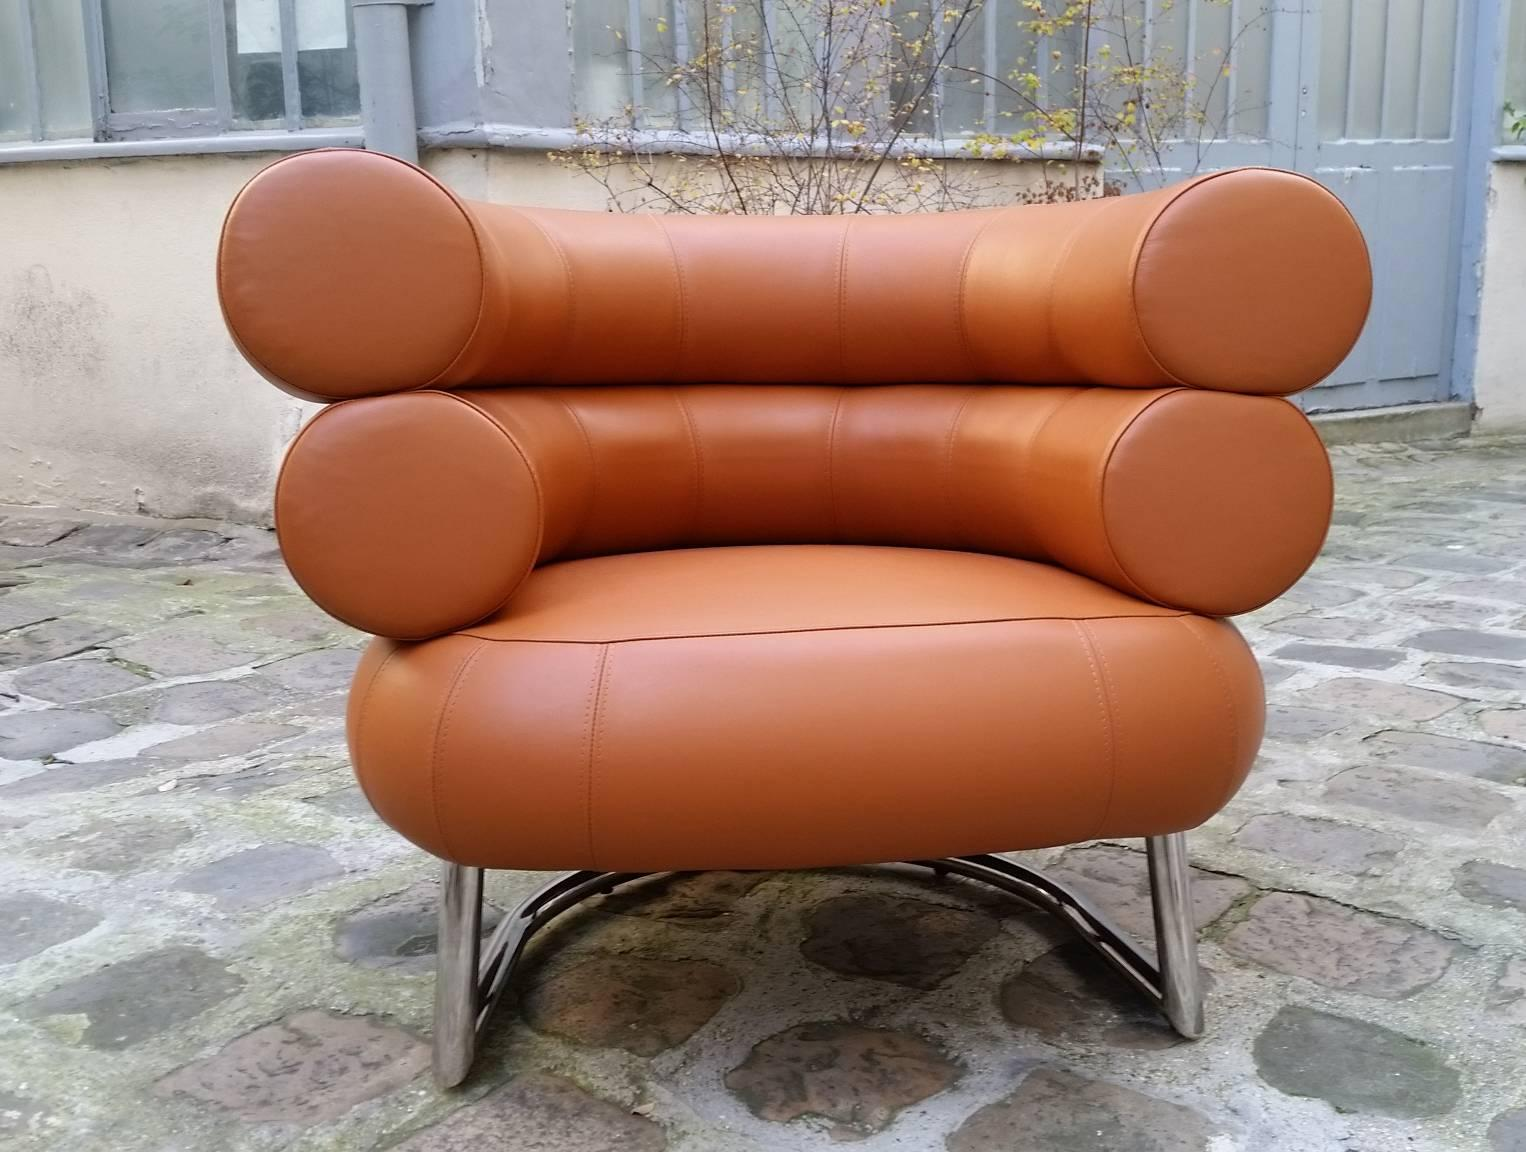 British Eileen Gray Classicon Armchair, 1989 For Sale